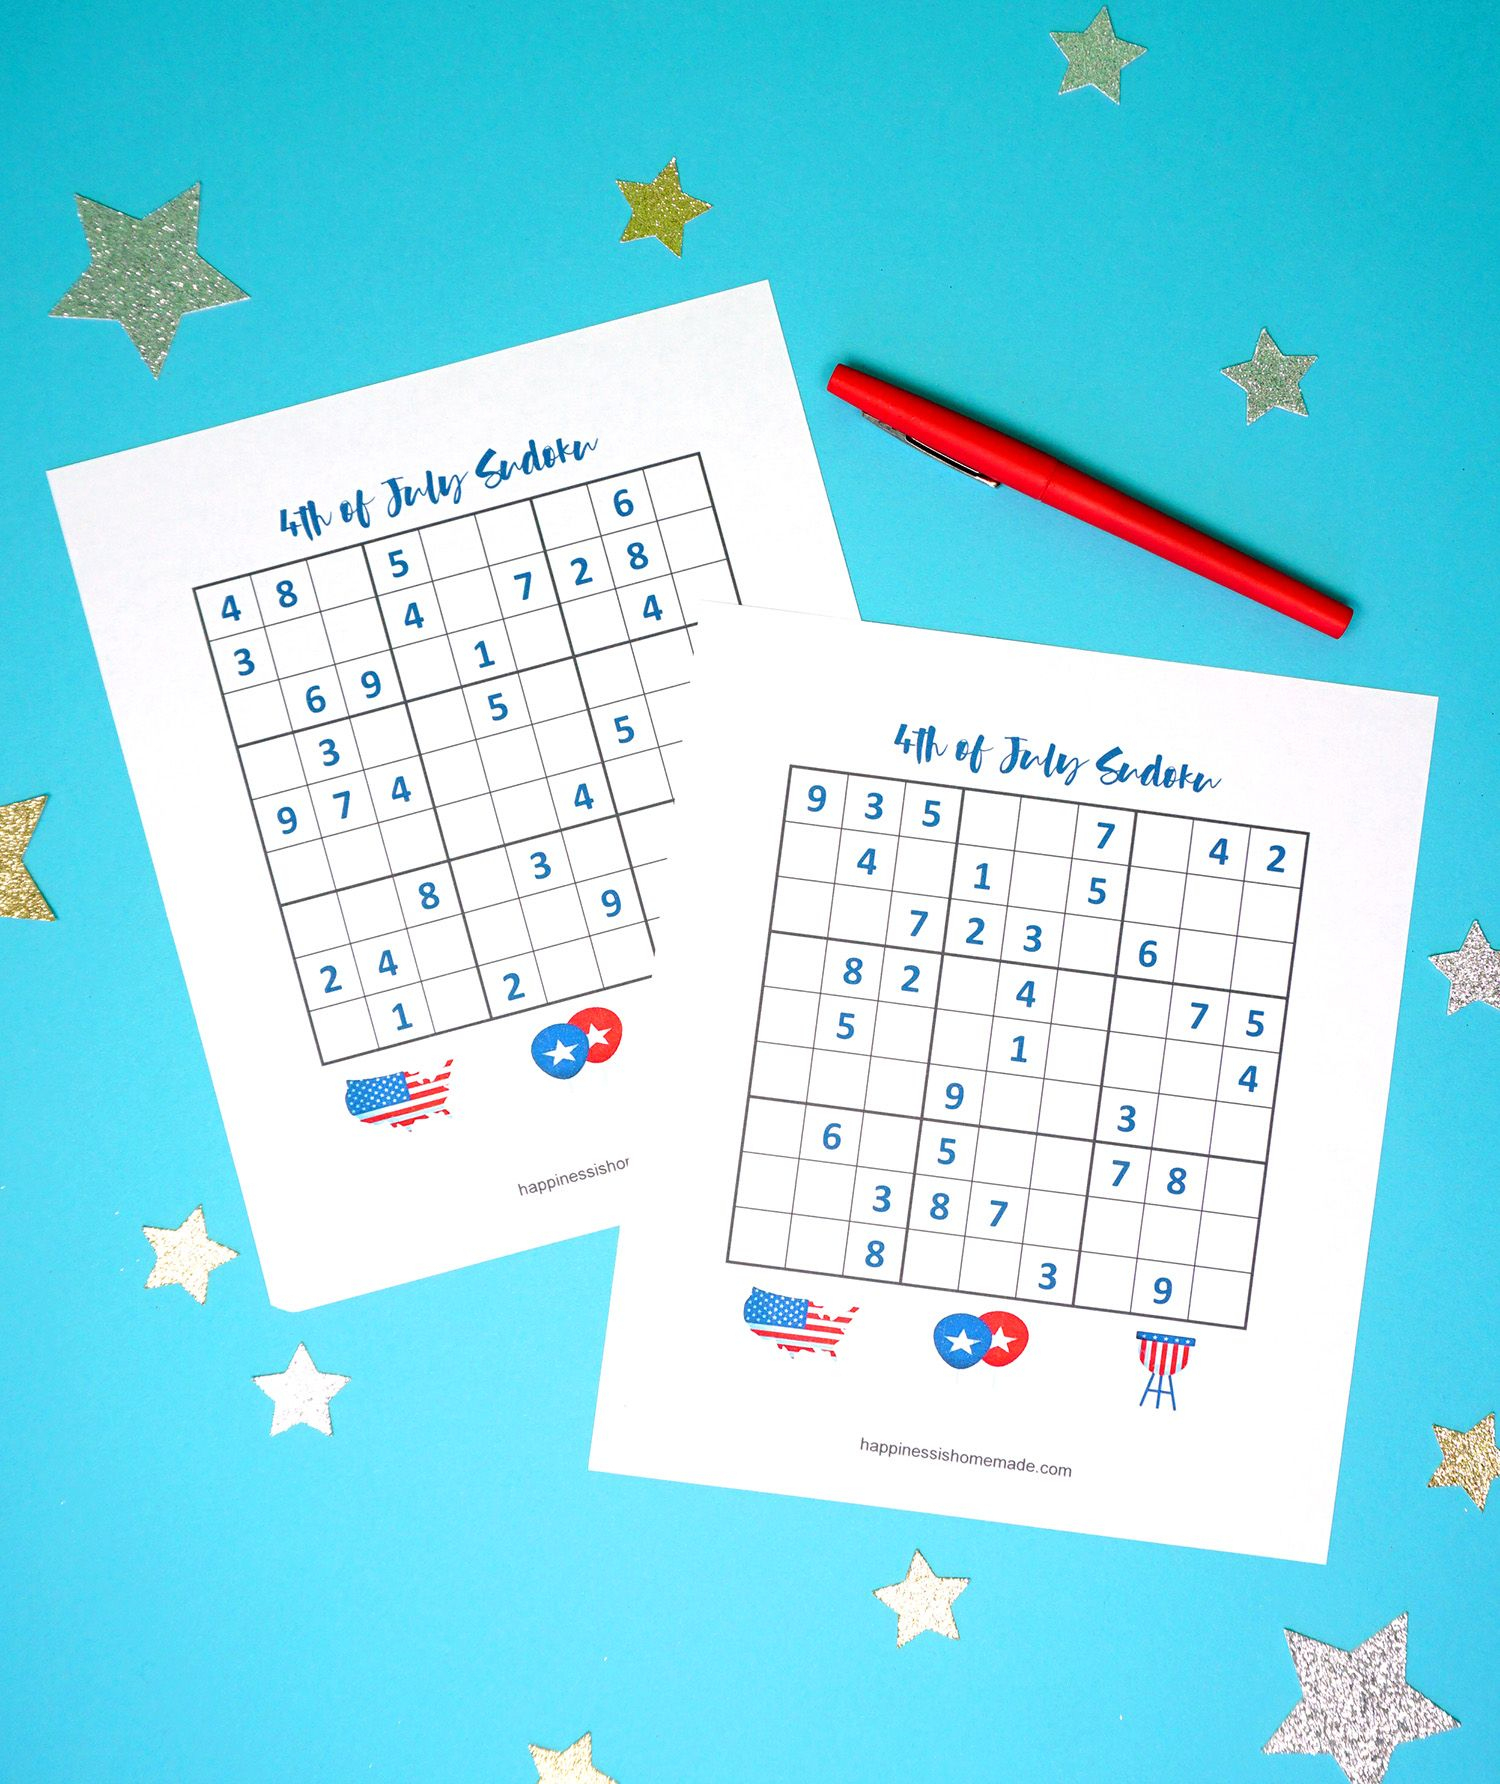 4Th Of July Printable Sudoku Puzzles + Logic Puzzle - Happiness Is - Printable Office Puzzles